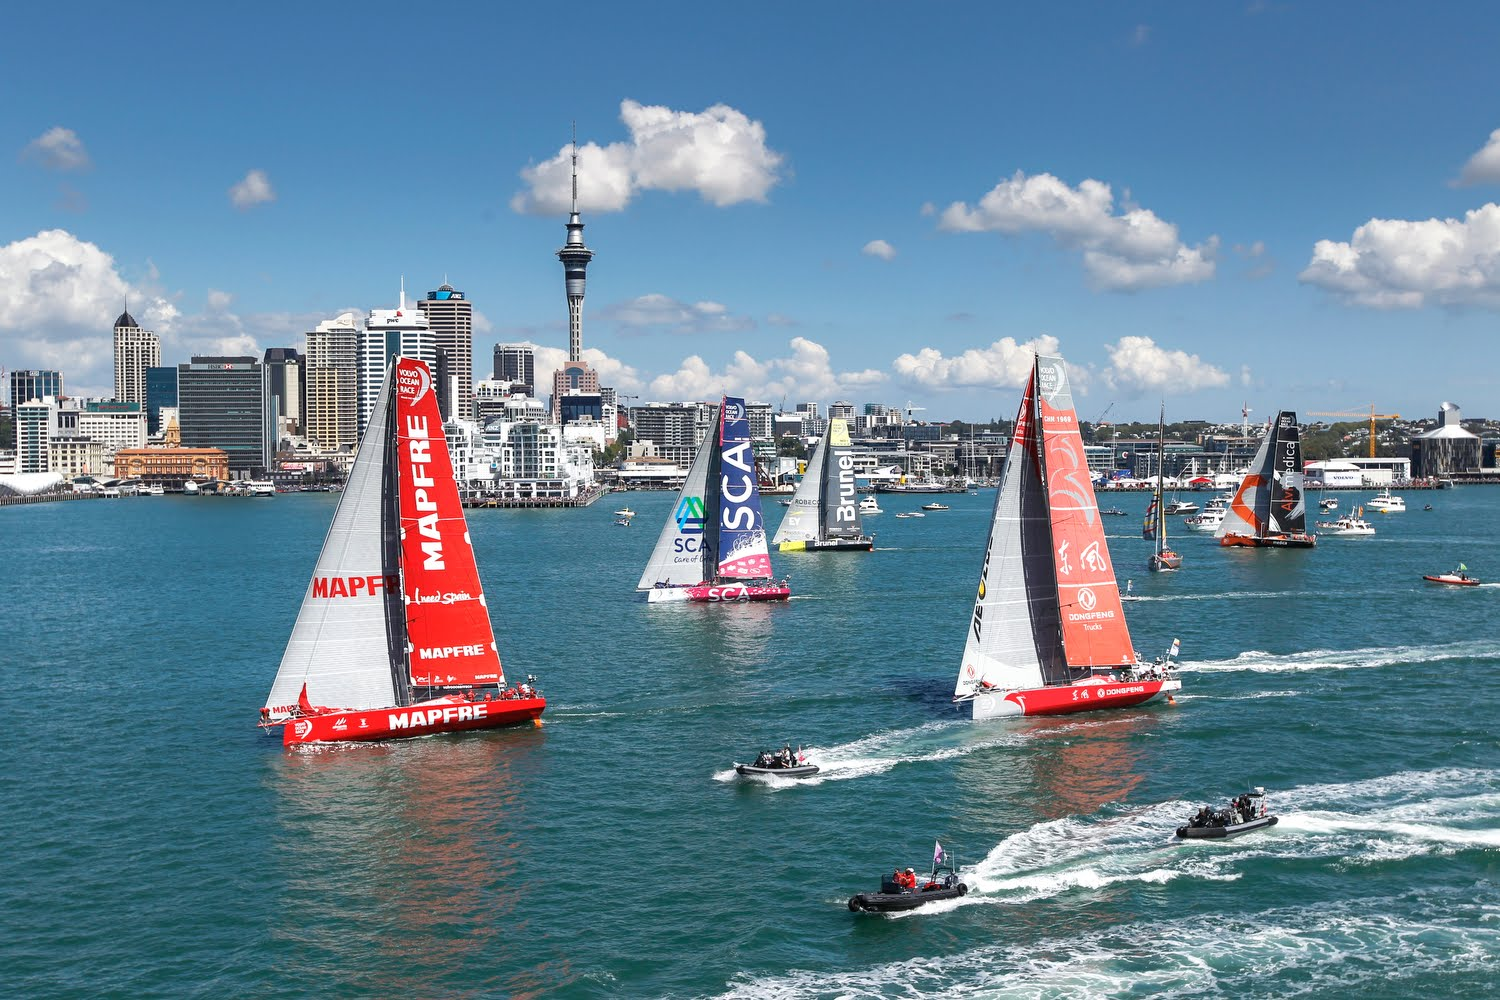 A shot from the New Zealand In Port Race - VOR pic